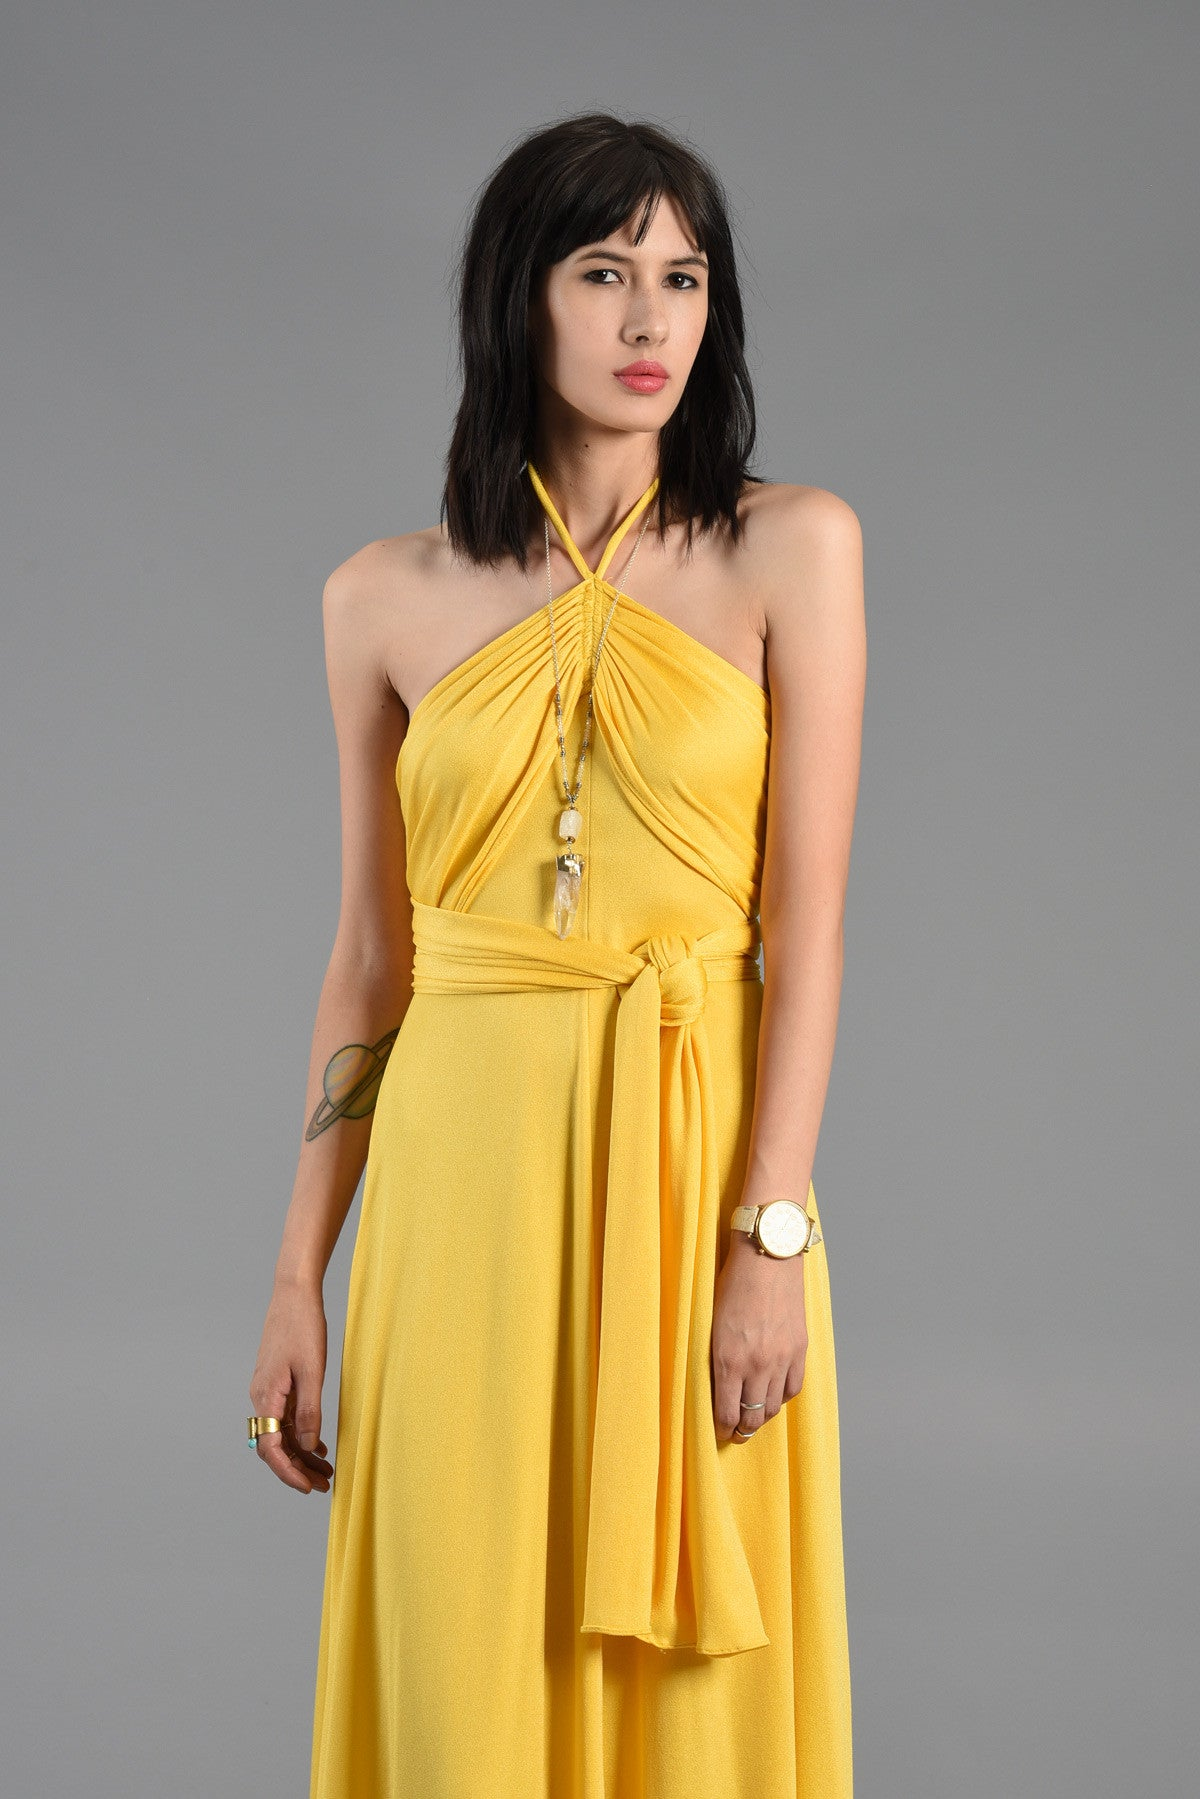 Yellow dresses collection - Canary yellow backless cocktail dress.